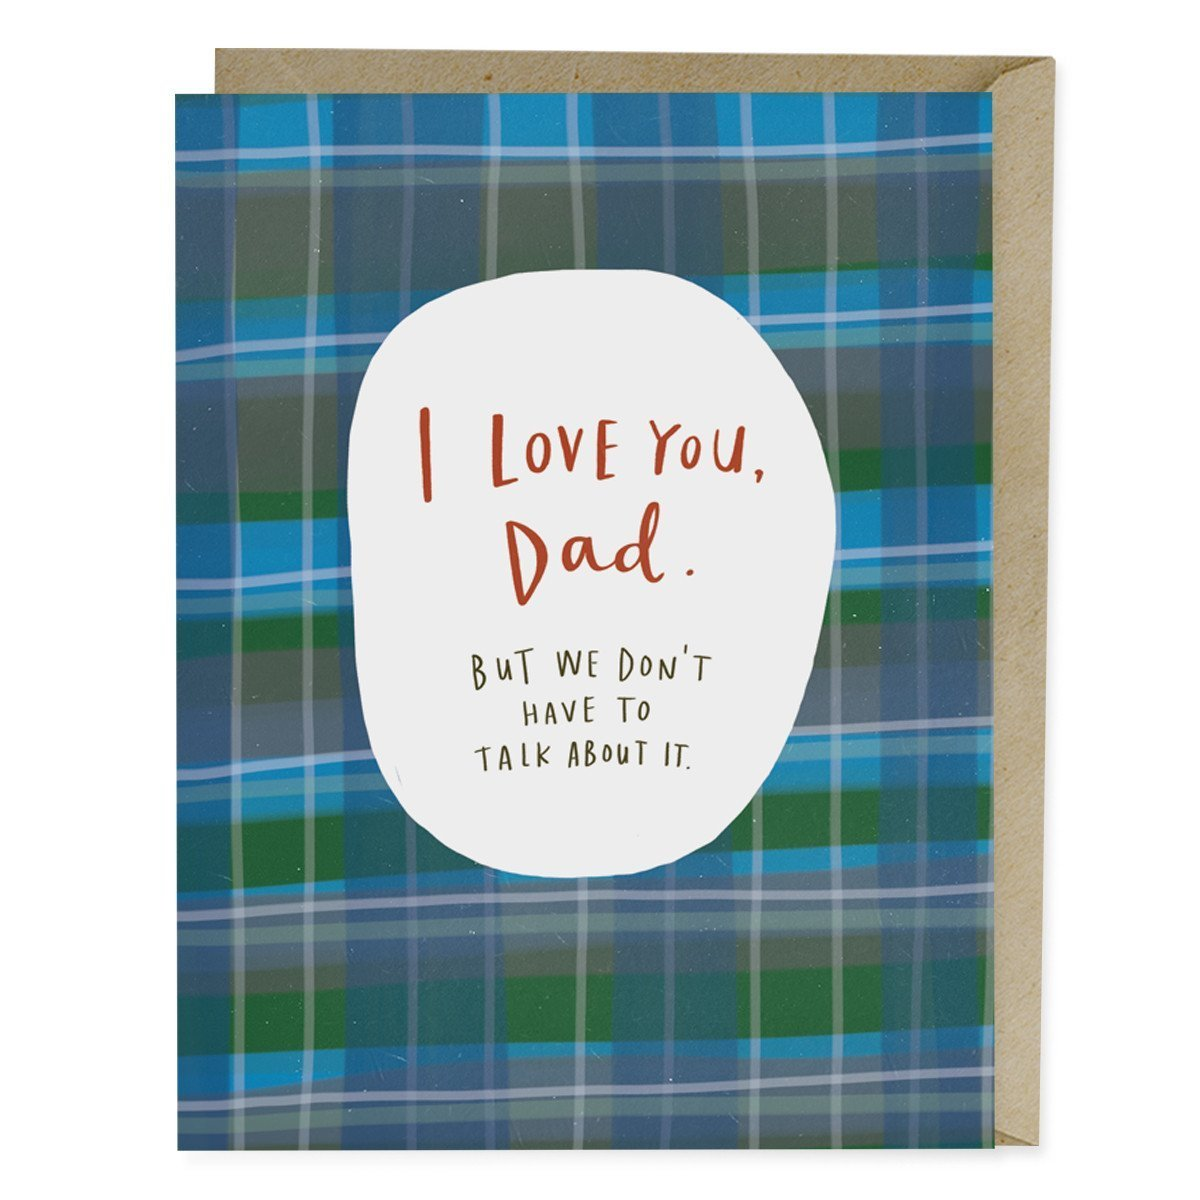 Personalised Father's Day 2019 Cards by Son/Daughter